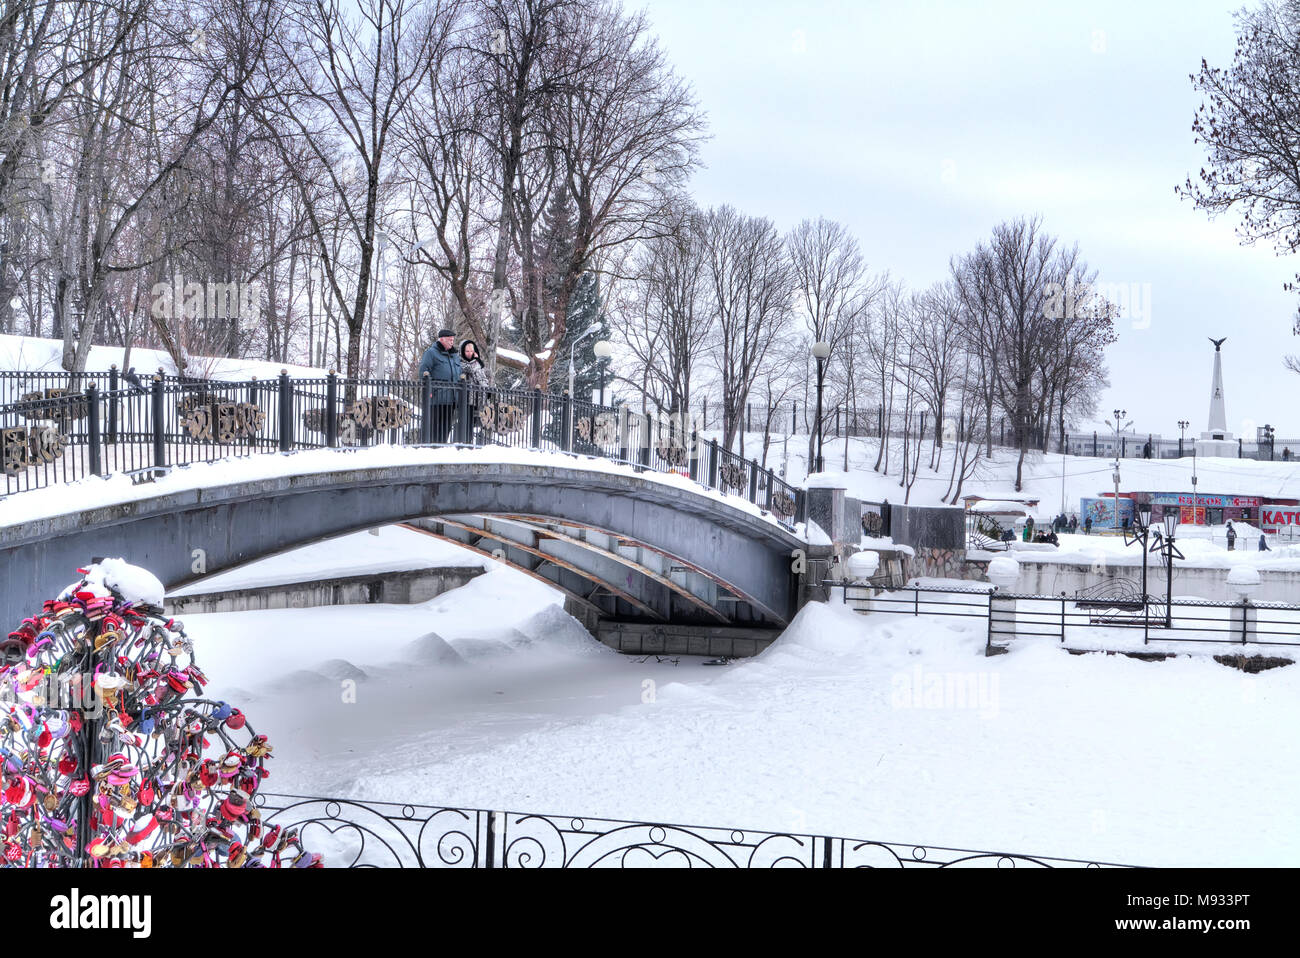 SMOLENSK, RUSSIA - March 08.2018: The territory of the Lopatinsky garden. Humpbacked bridge over the lake - Stock Image